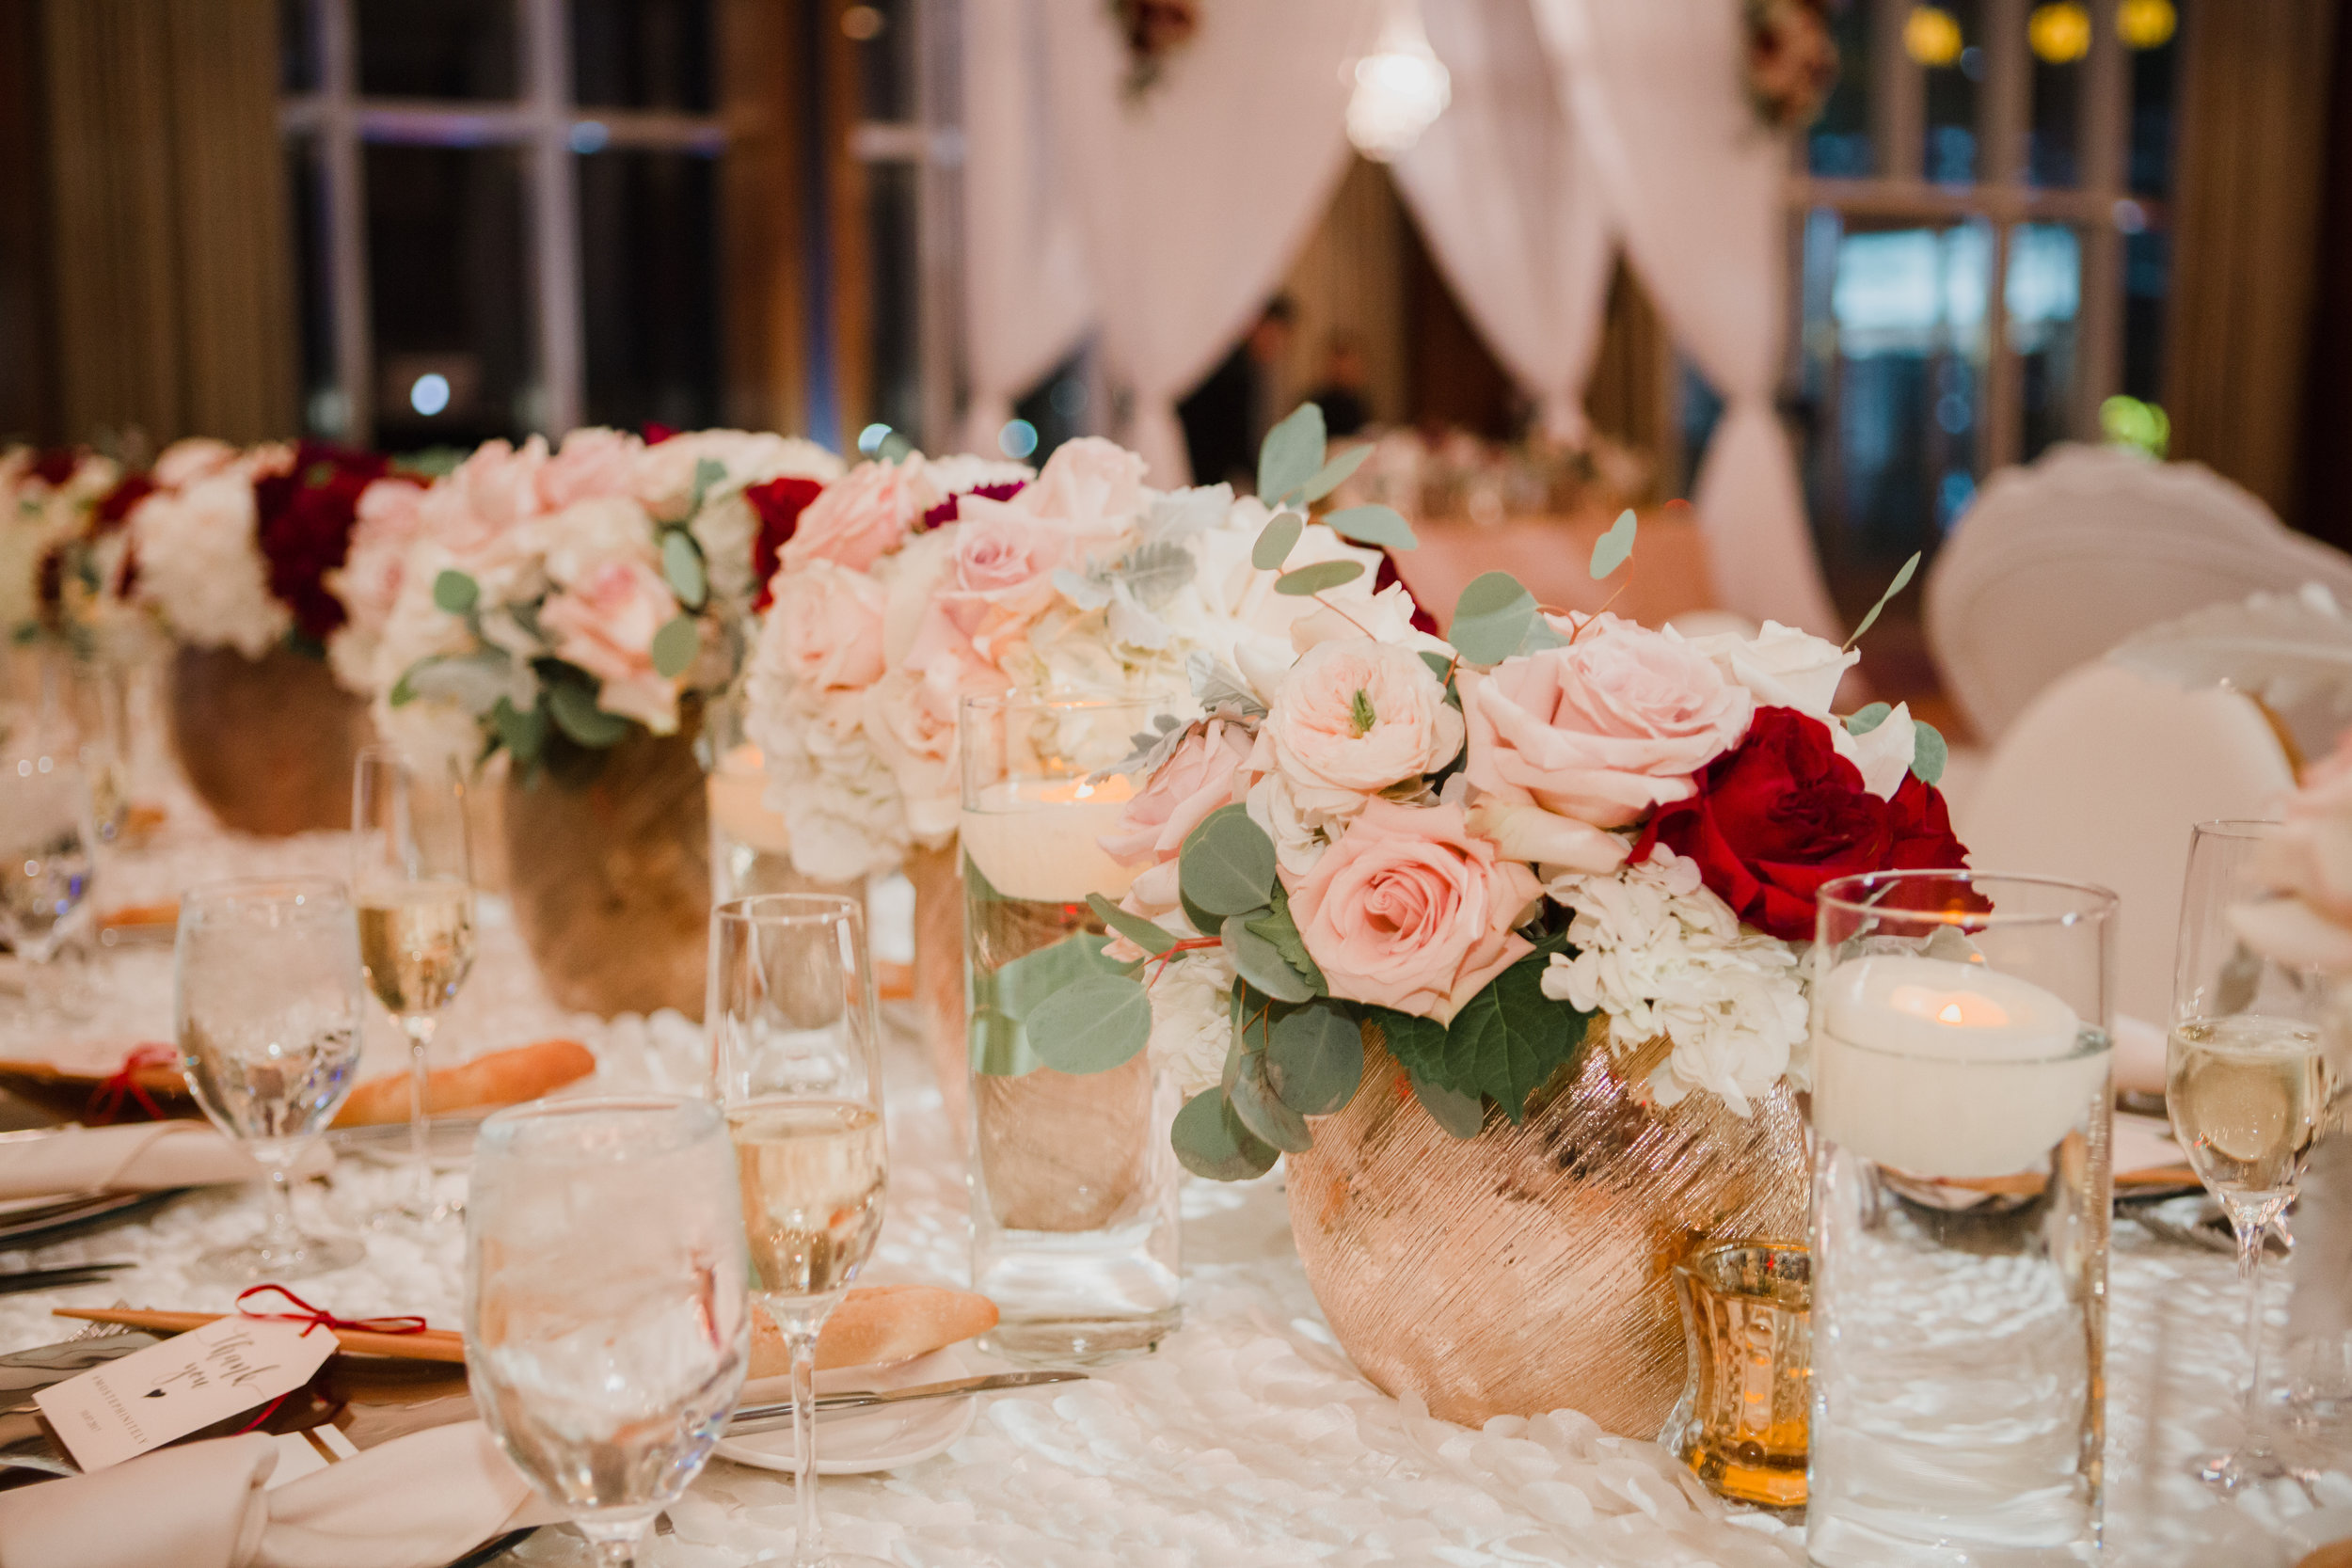 Pink roses with pops of red in gold vases.Luxury wedding at the Mandarin Oriental with a color scheme of white, blush, and pops of wine red produced by Las Vegas Wedding Planner Andrea Eppolito with photos by Stephen Salazar Photography.